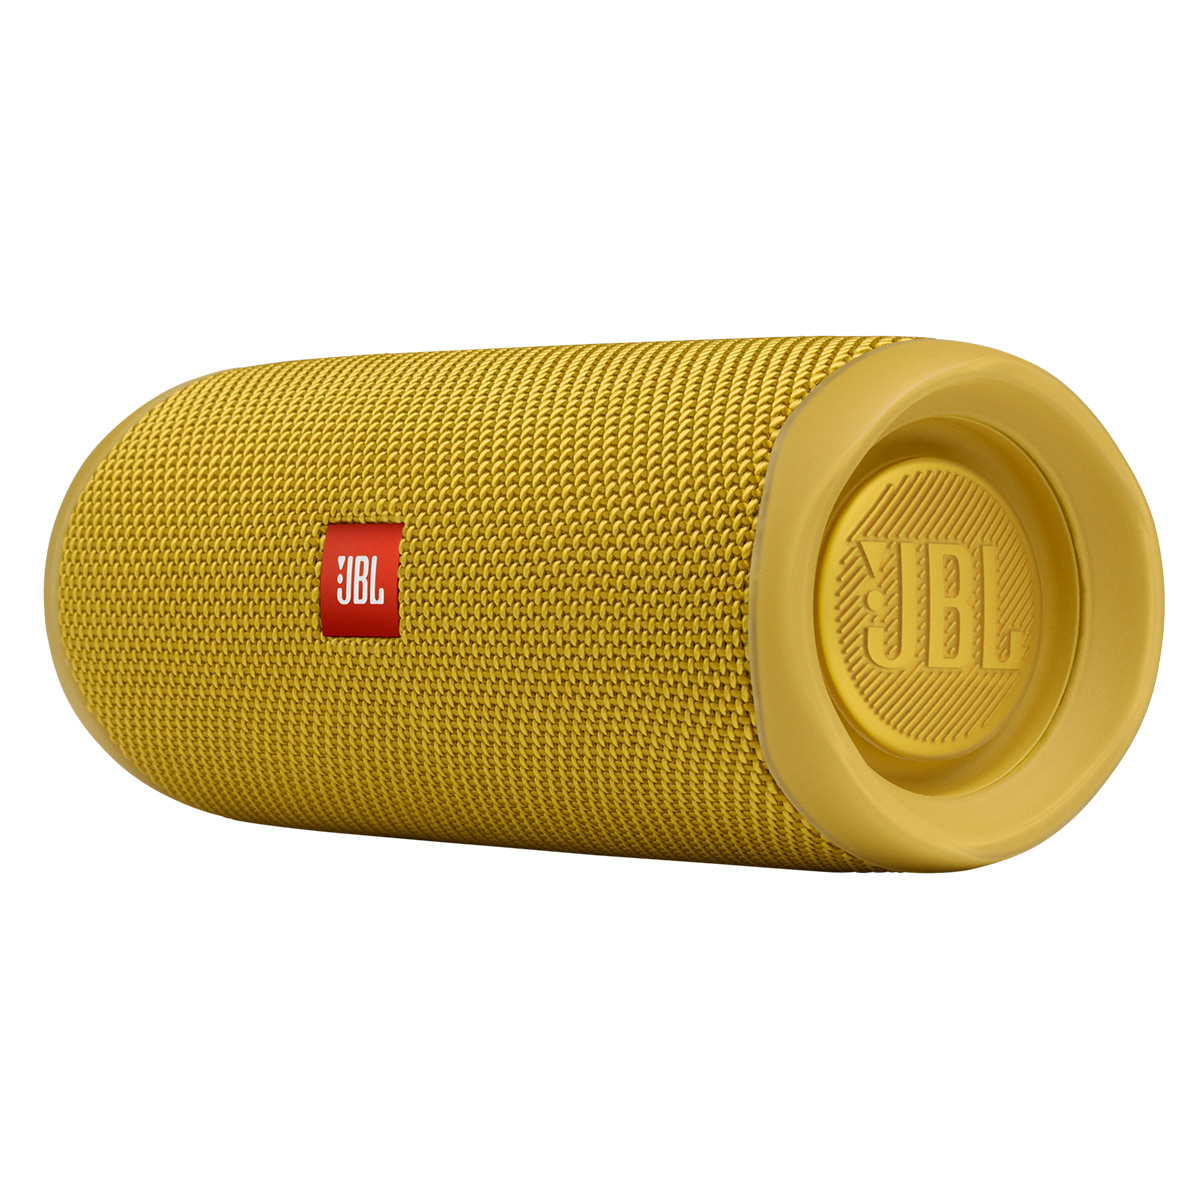 JBL-Flip-5-Portable-Waterproof-Bluetooth-Speaker thumbnail 47